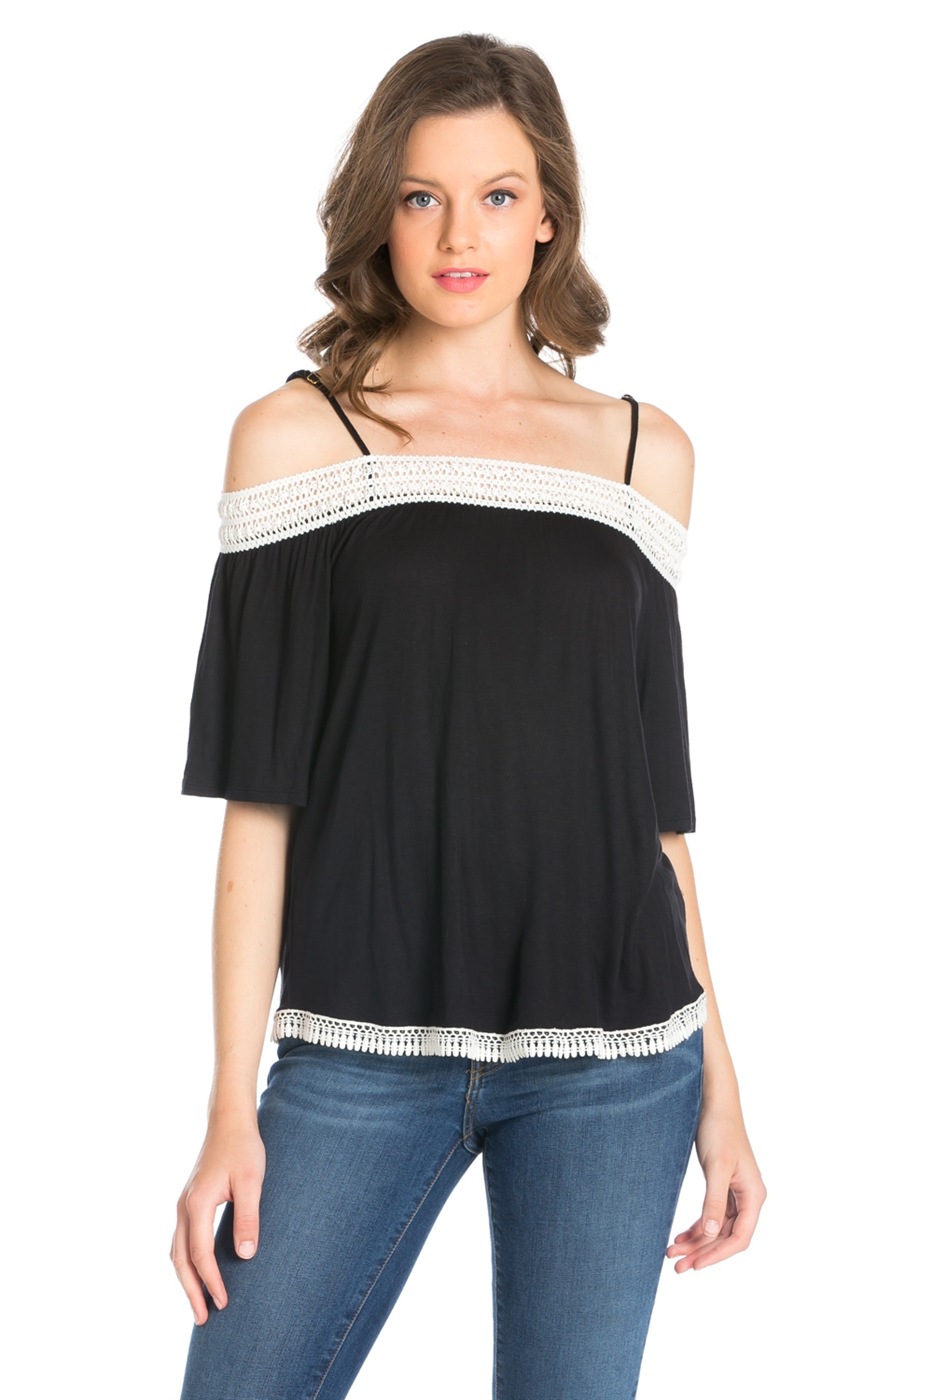 RSJ LACE TRIM OFF SHOULDER TOP - orangeshine.com